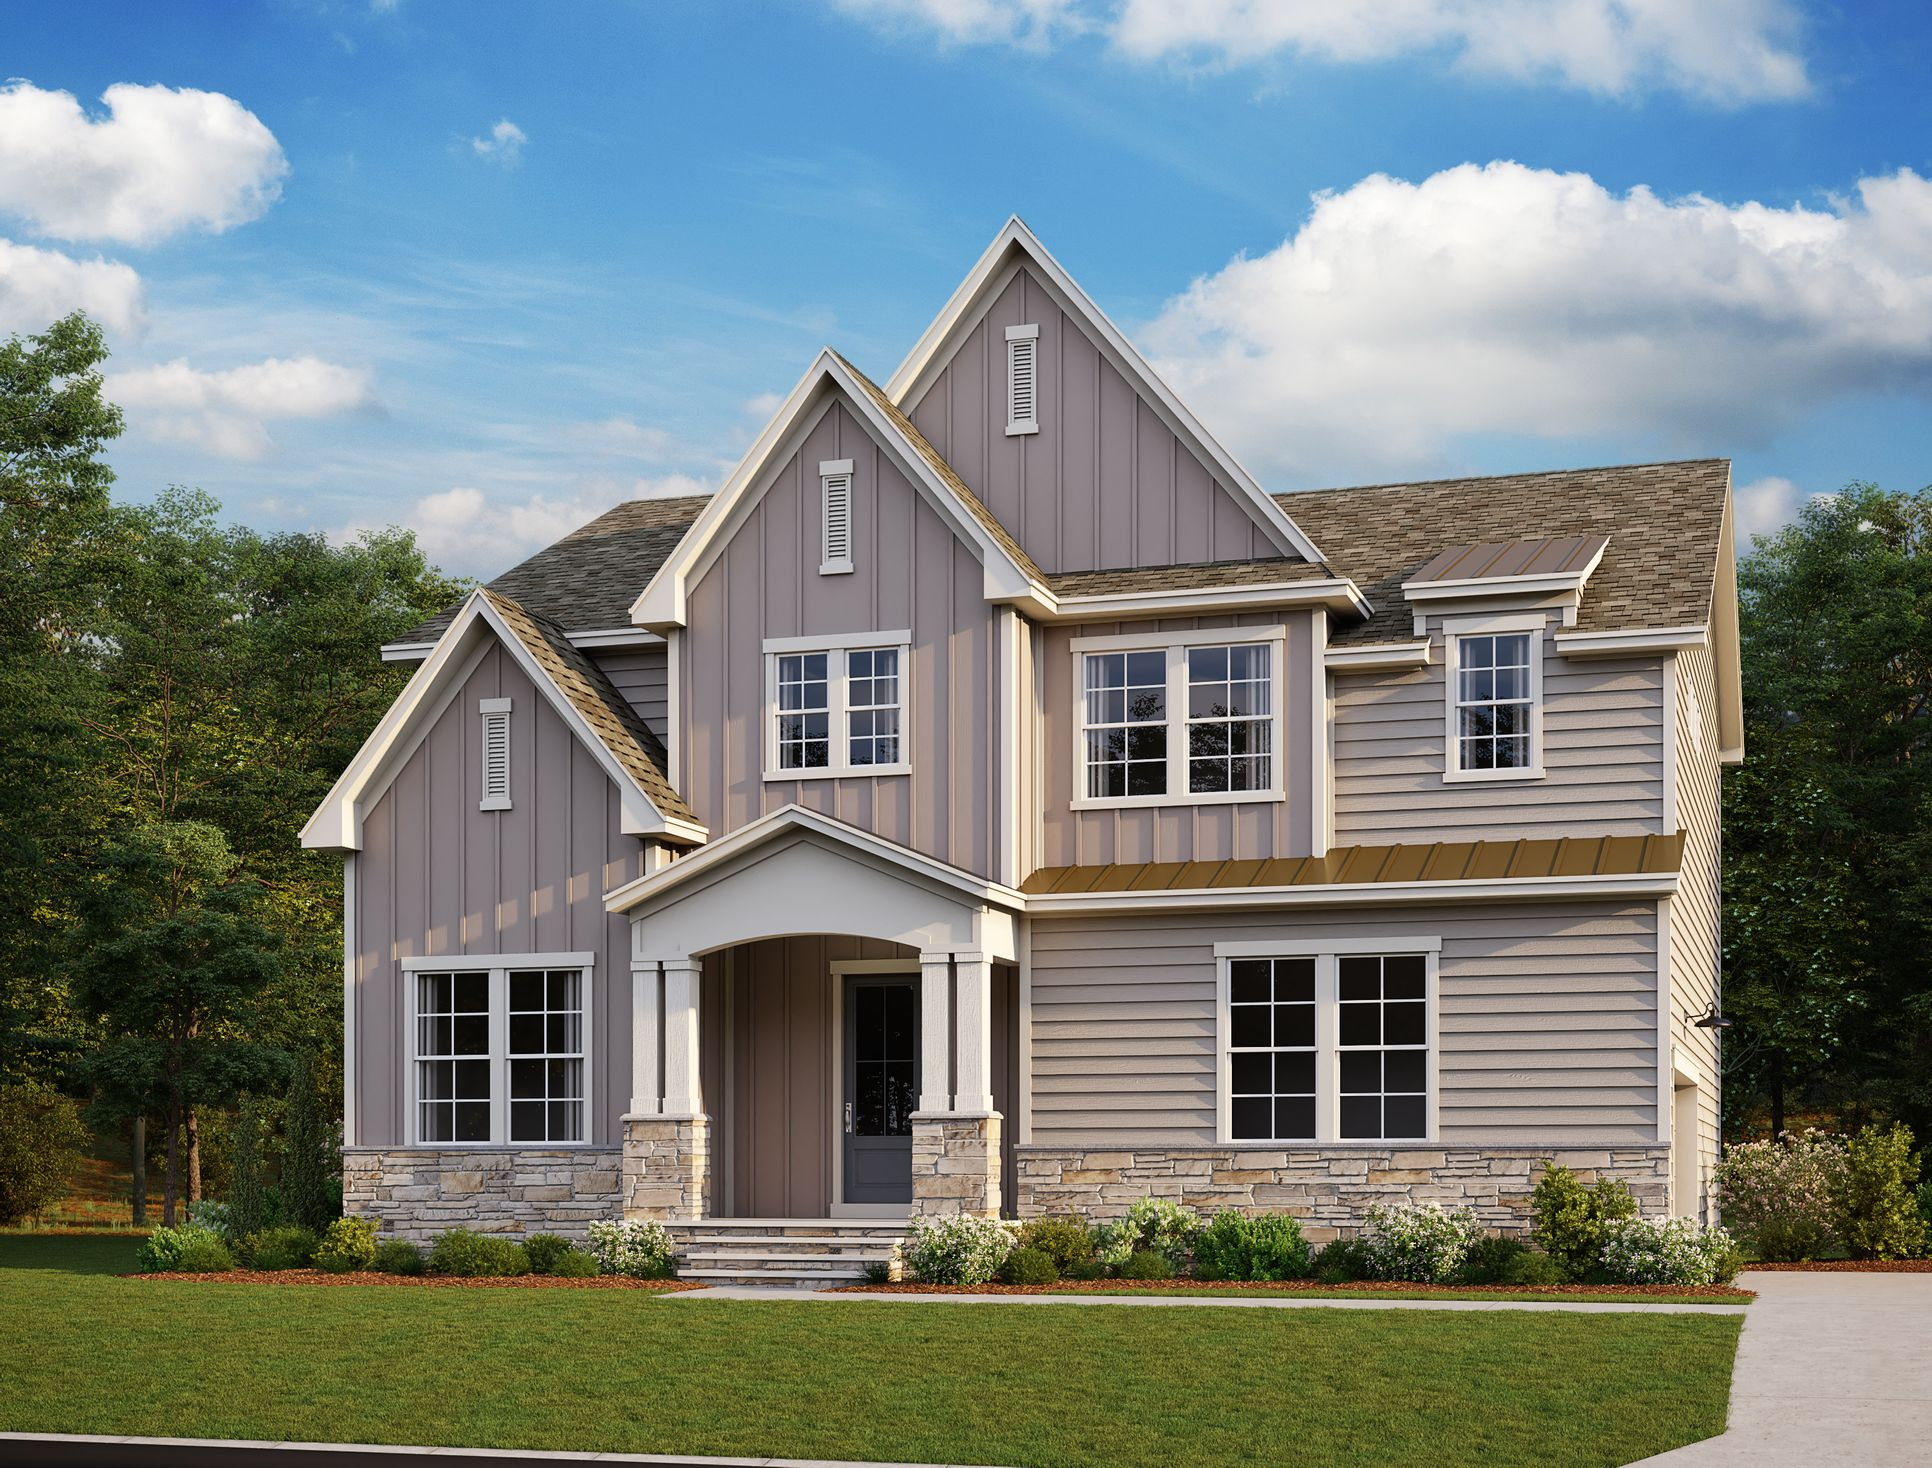 Exterior:Parks at Meadowview - Olivia II Elevation Image 1